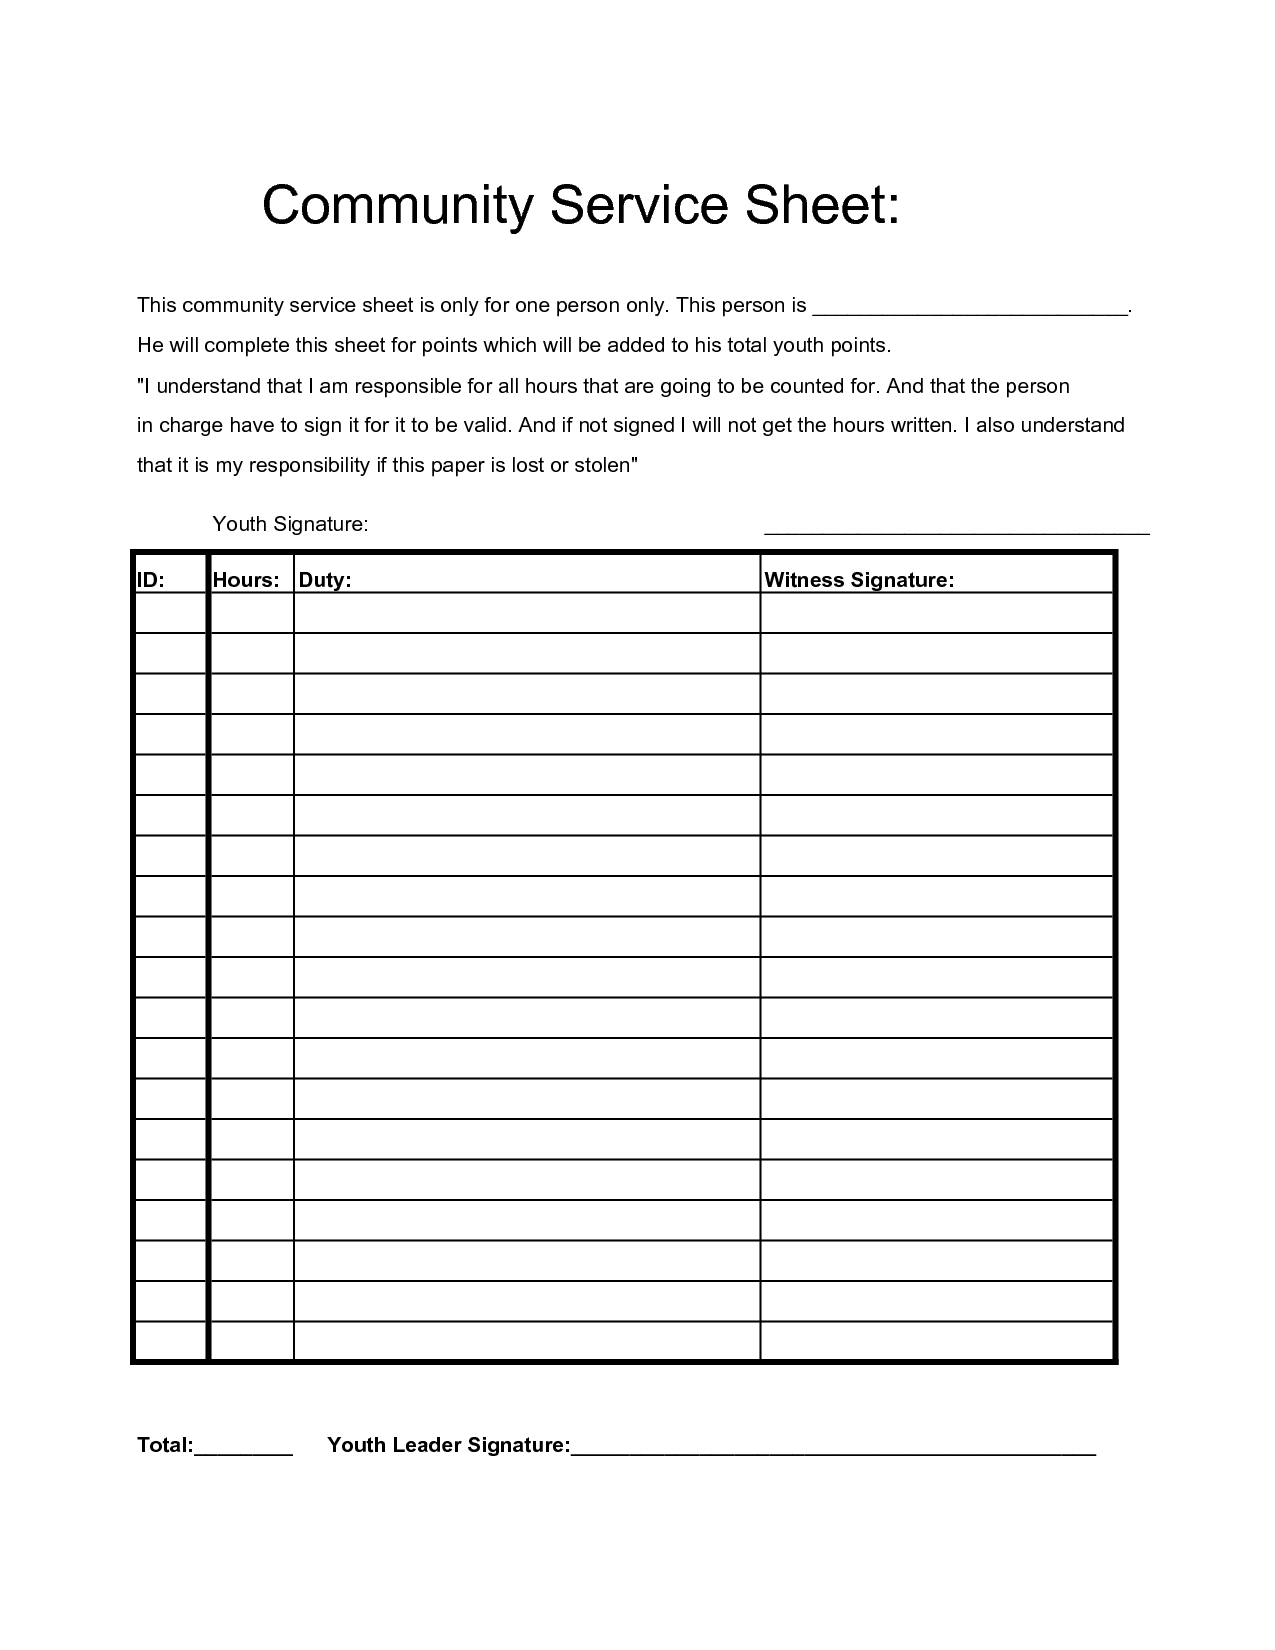 Community Service Hours Sheet | Projects to Try | Pinterest ...